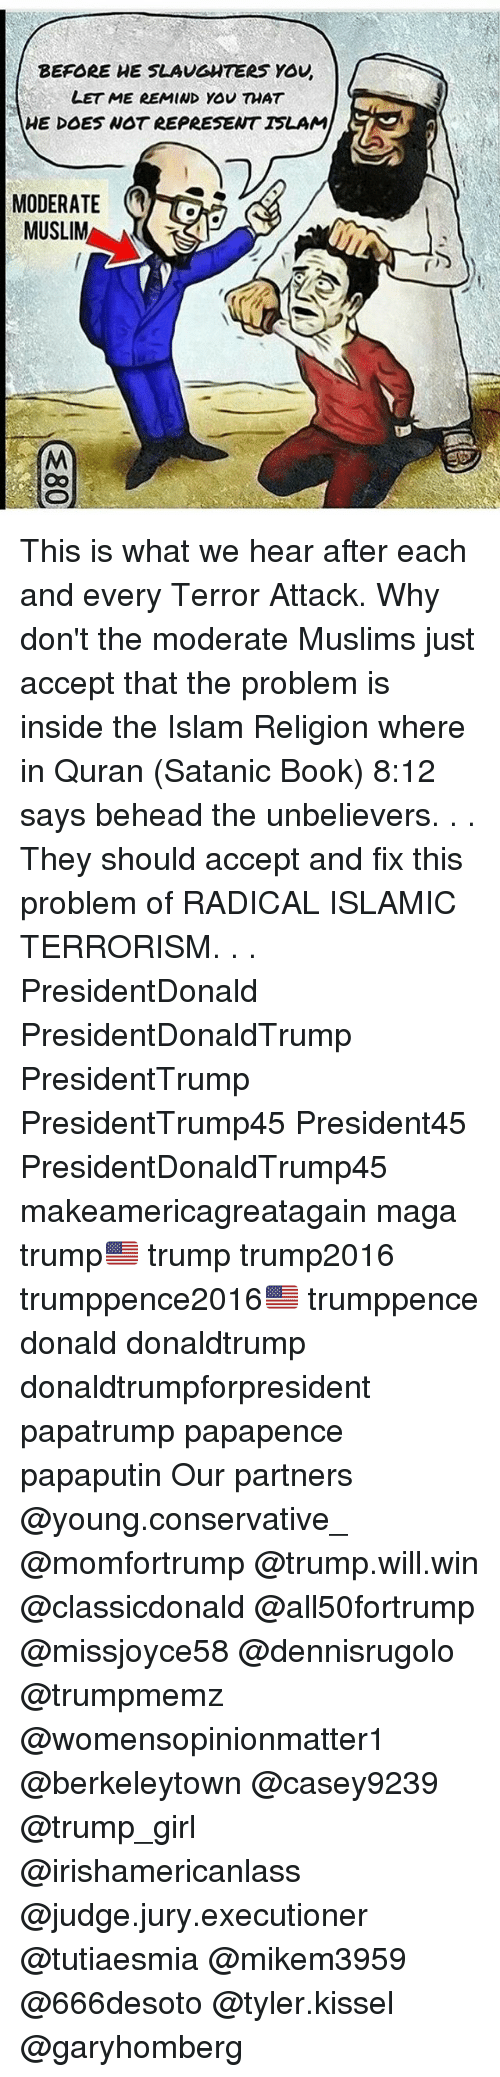 Memes, Muslim, and Book: BEFORE WE SLAUGNTERs Yov,  LET ME REMIND YOU THAT  HE DOES WOT REPRESENT ISLAM  MODERATE  MUSLIM This is what we hear after each and every Terror Attack. Why don't the moderate Muslims just accept that the problem is inside the Islam Religion where in Quran (Satanic Book) 8:12 says behead the unbelievers. . . They should accept and fix this problem of RADICAL ISLAMIC TERRORISM. . . PresidentDonald PresidentDonaldTrump PresidentTrump PresidentTrump45 President45 PresidentDonaldTrump45 makeamericagreatagain maga trump🇺🇸 trump trump2016 trumppence2016🇺🇸 trumppence donald donaldtrump donaldtrumpforpresident papatrump papapence papaputin Our partners @young.conservative_ @momfortrump @trump.will.win @classicdonald @all50fortrump @missjoyce58 @dennisrugolo @trumpmemz @womensopinionmatter1 @berkeleytown @casey9239 @trump_girl @irishamericanlass @judge.jury.executioner @tutiaesmia @mikem3959 @666desoto @tyler.kissel @garyhomberg